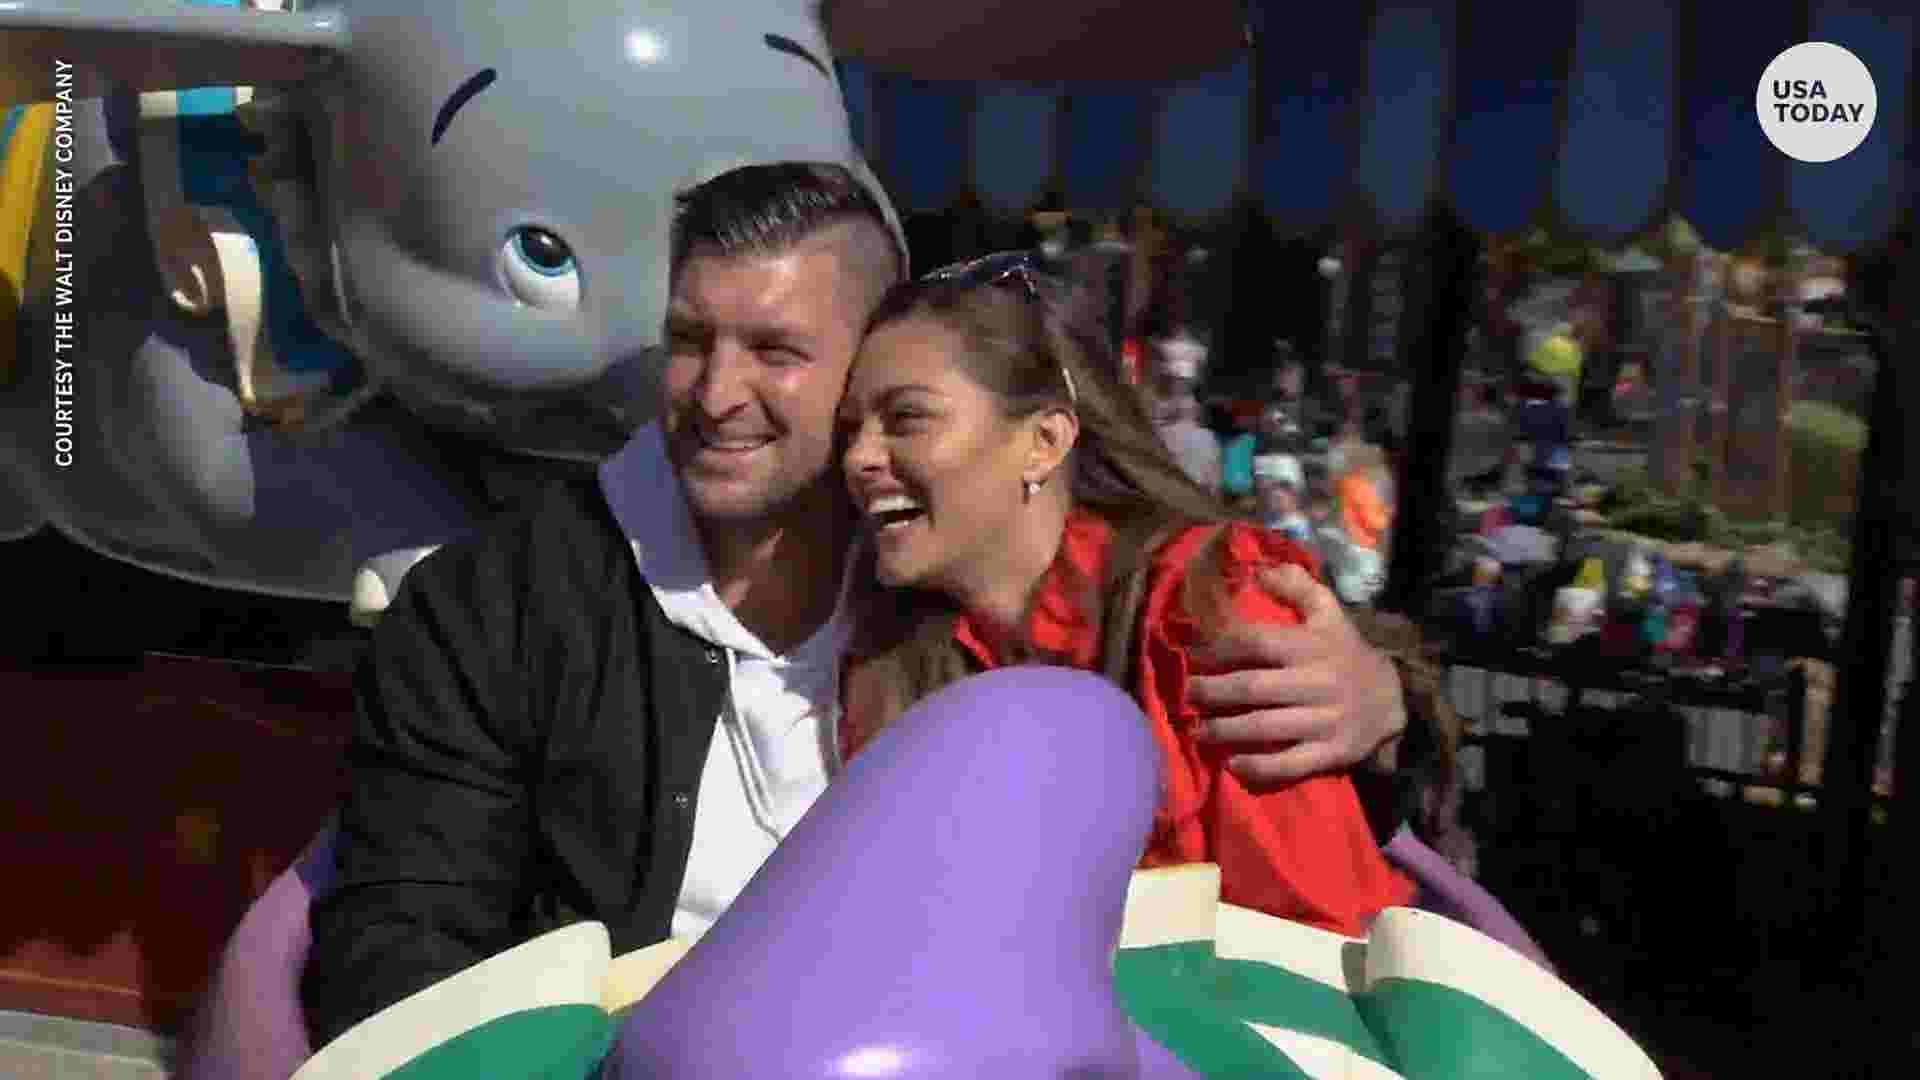 Tim Tebow New Fiancee Demi Leigh Nel Peters Celebrate At Disney World